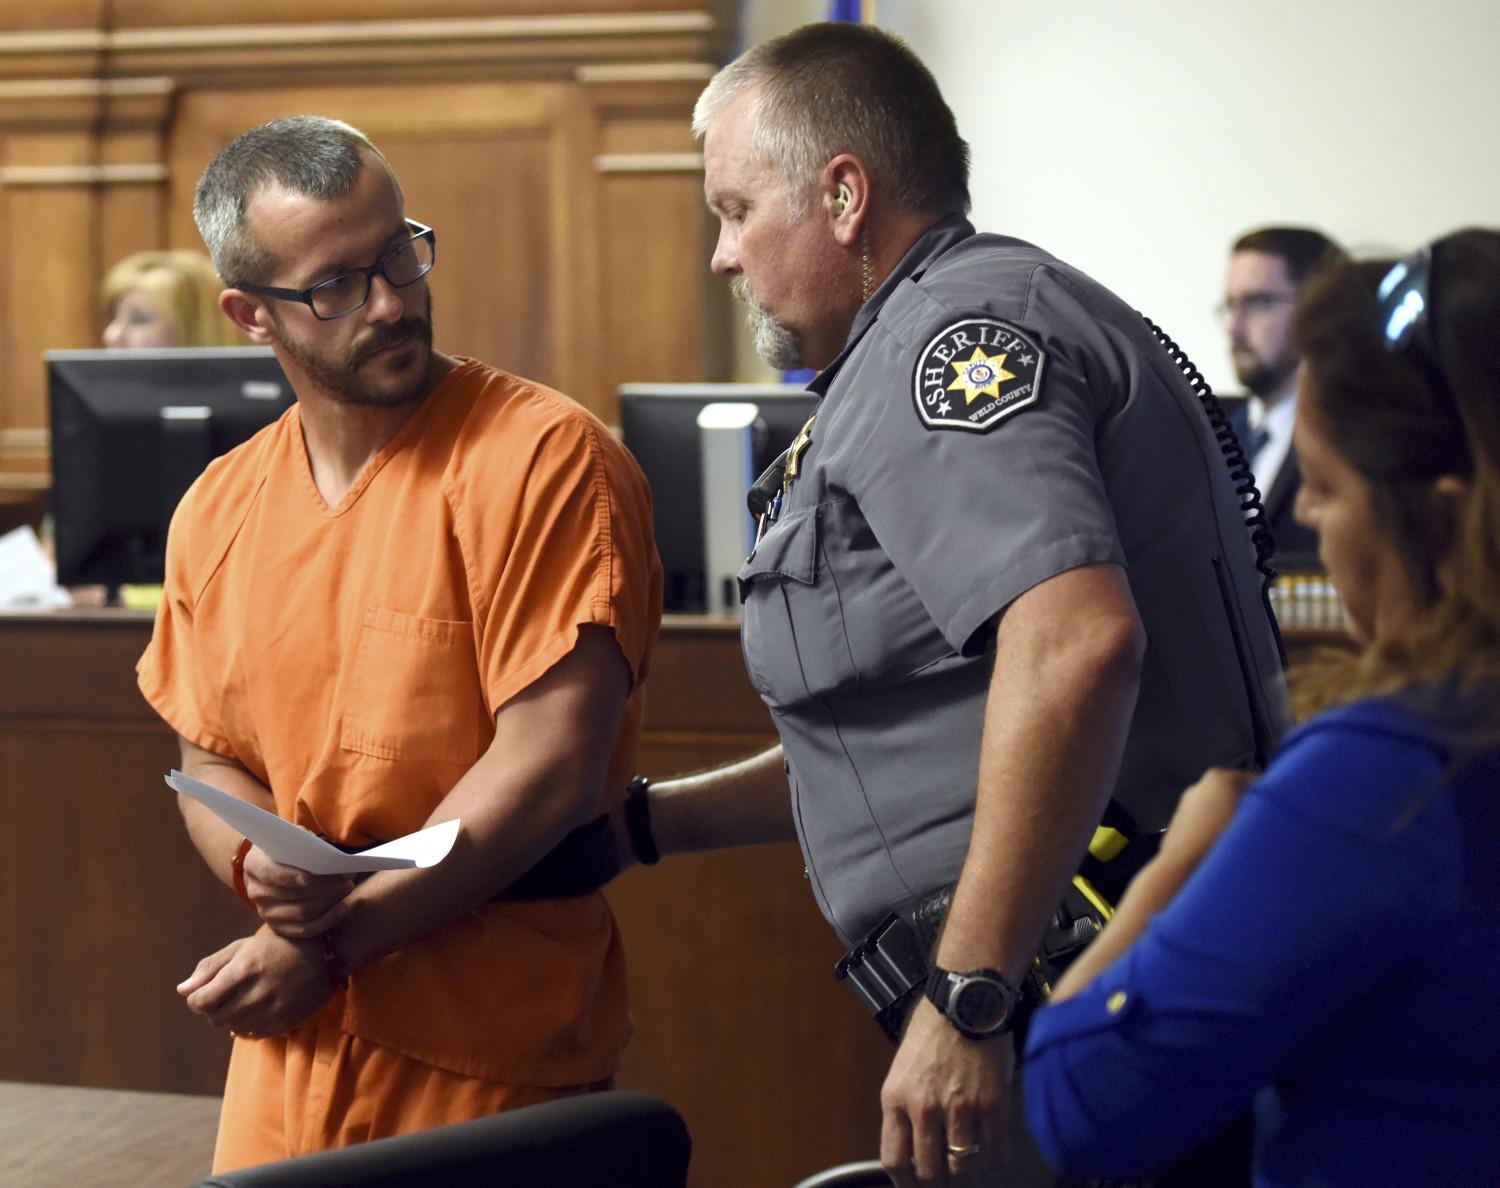 Christopher Watts glances back at a Weld County Sheriff's Deputy as he is escorted out of the courtroom at the Weld County Courthouse in Greeley, Colorado on Aug. 16, 2018. (Joshua Polson/The Greeley Tribune via AP, Pool)